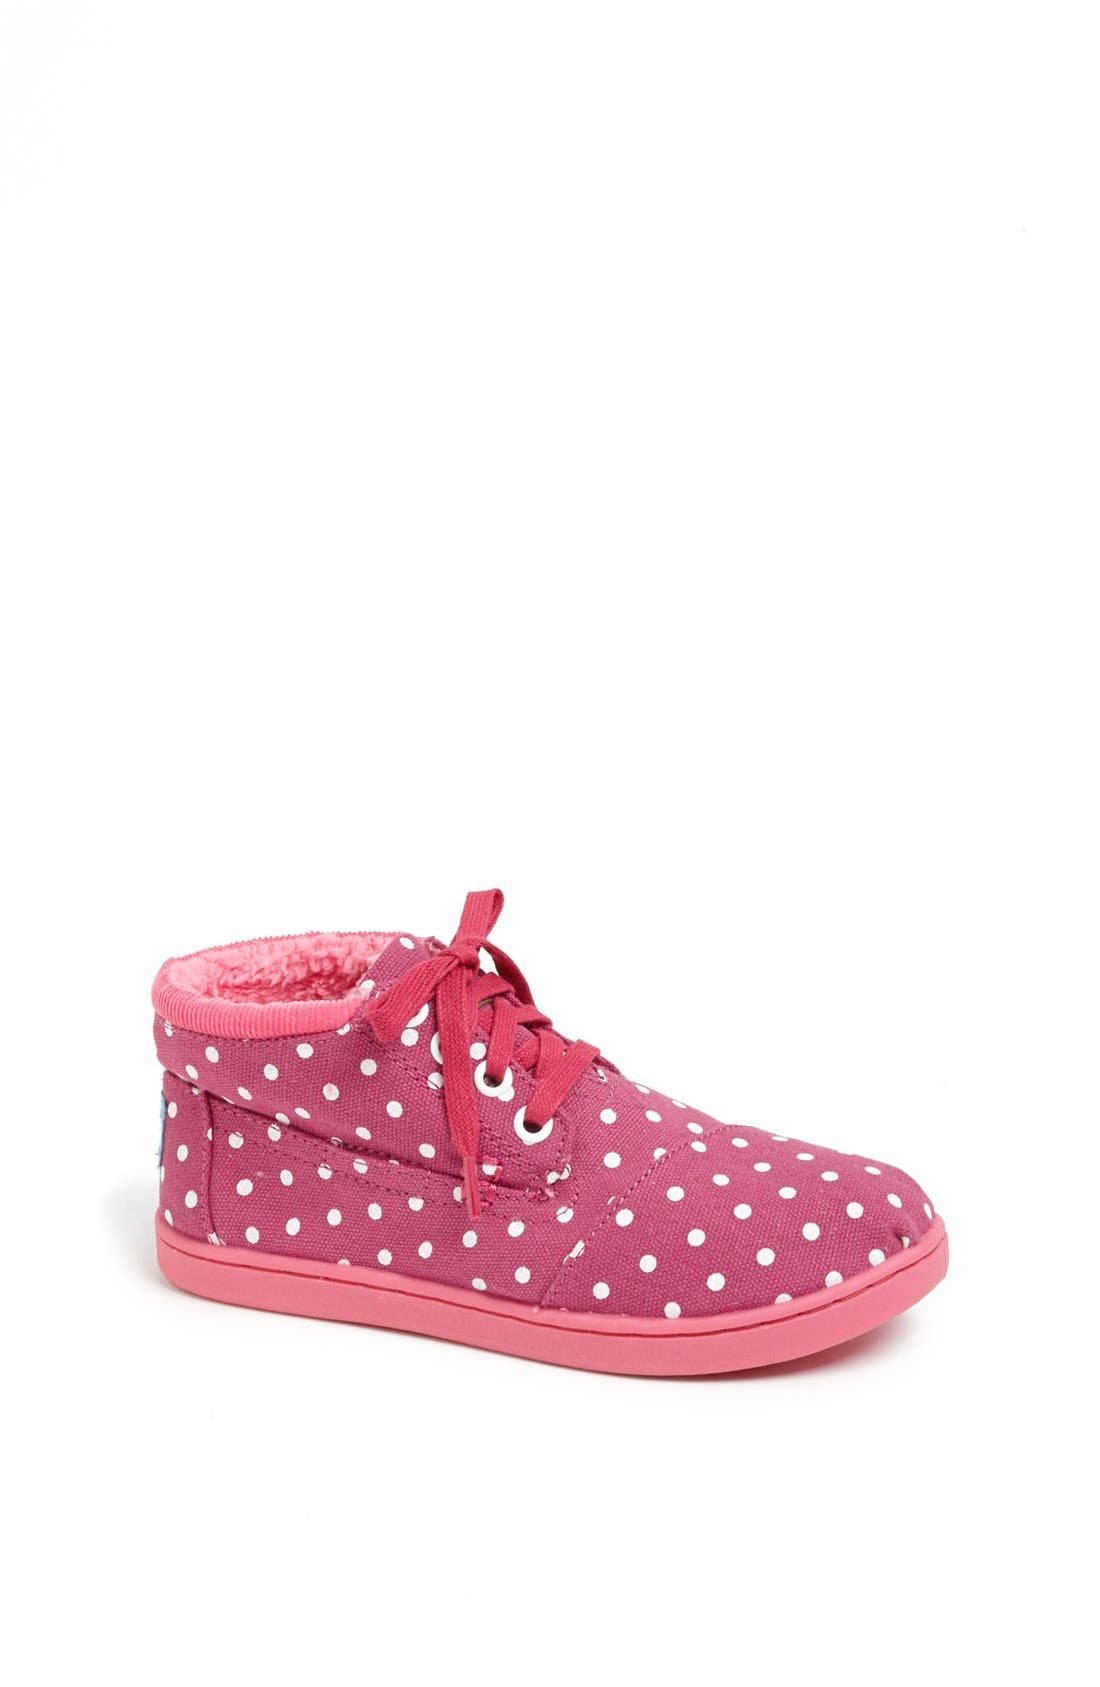 Main Image - TOMS 'Botas - Youth' High Top Sneaker (Toddler, Little Kid & Big Kid)